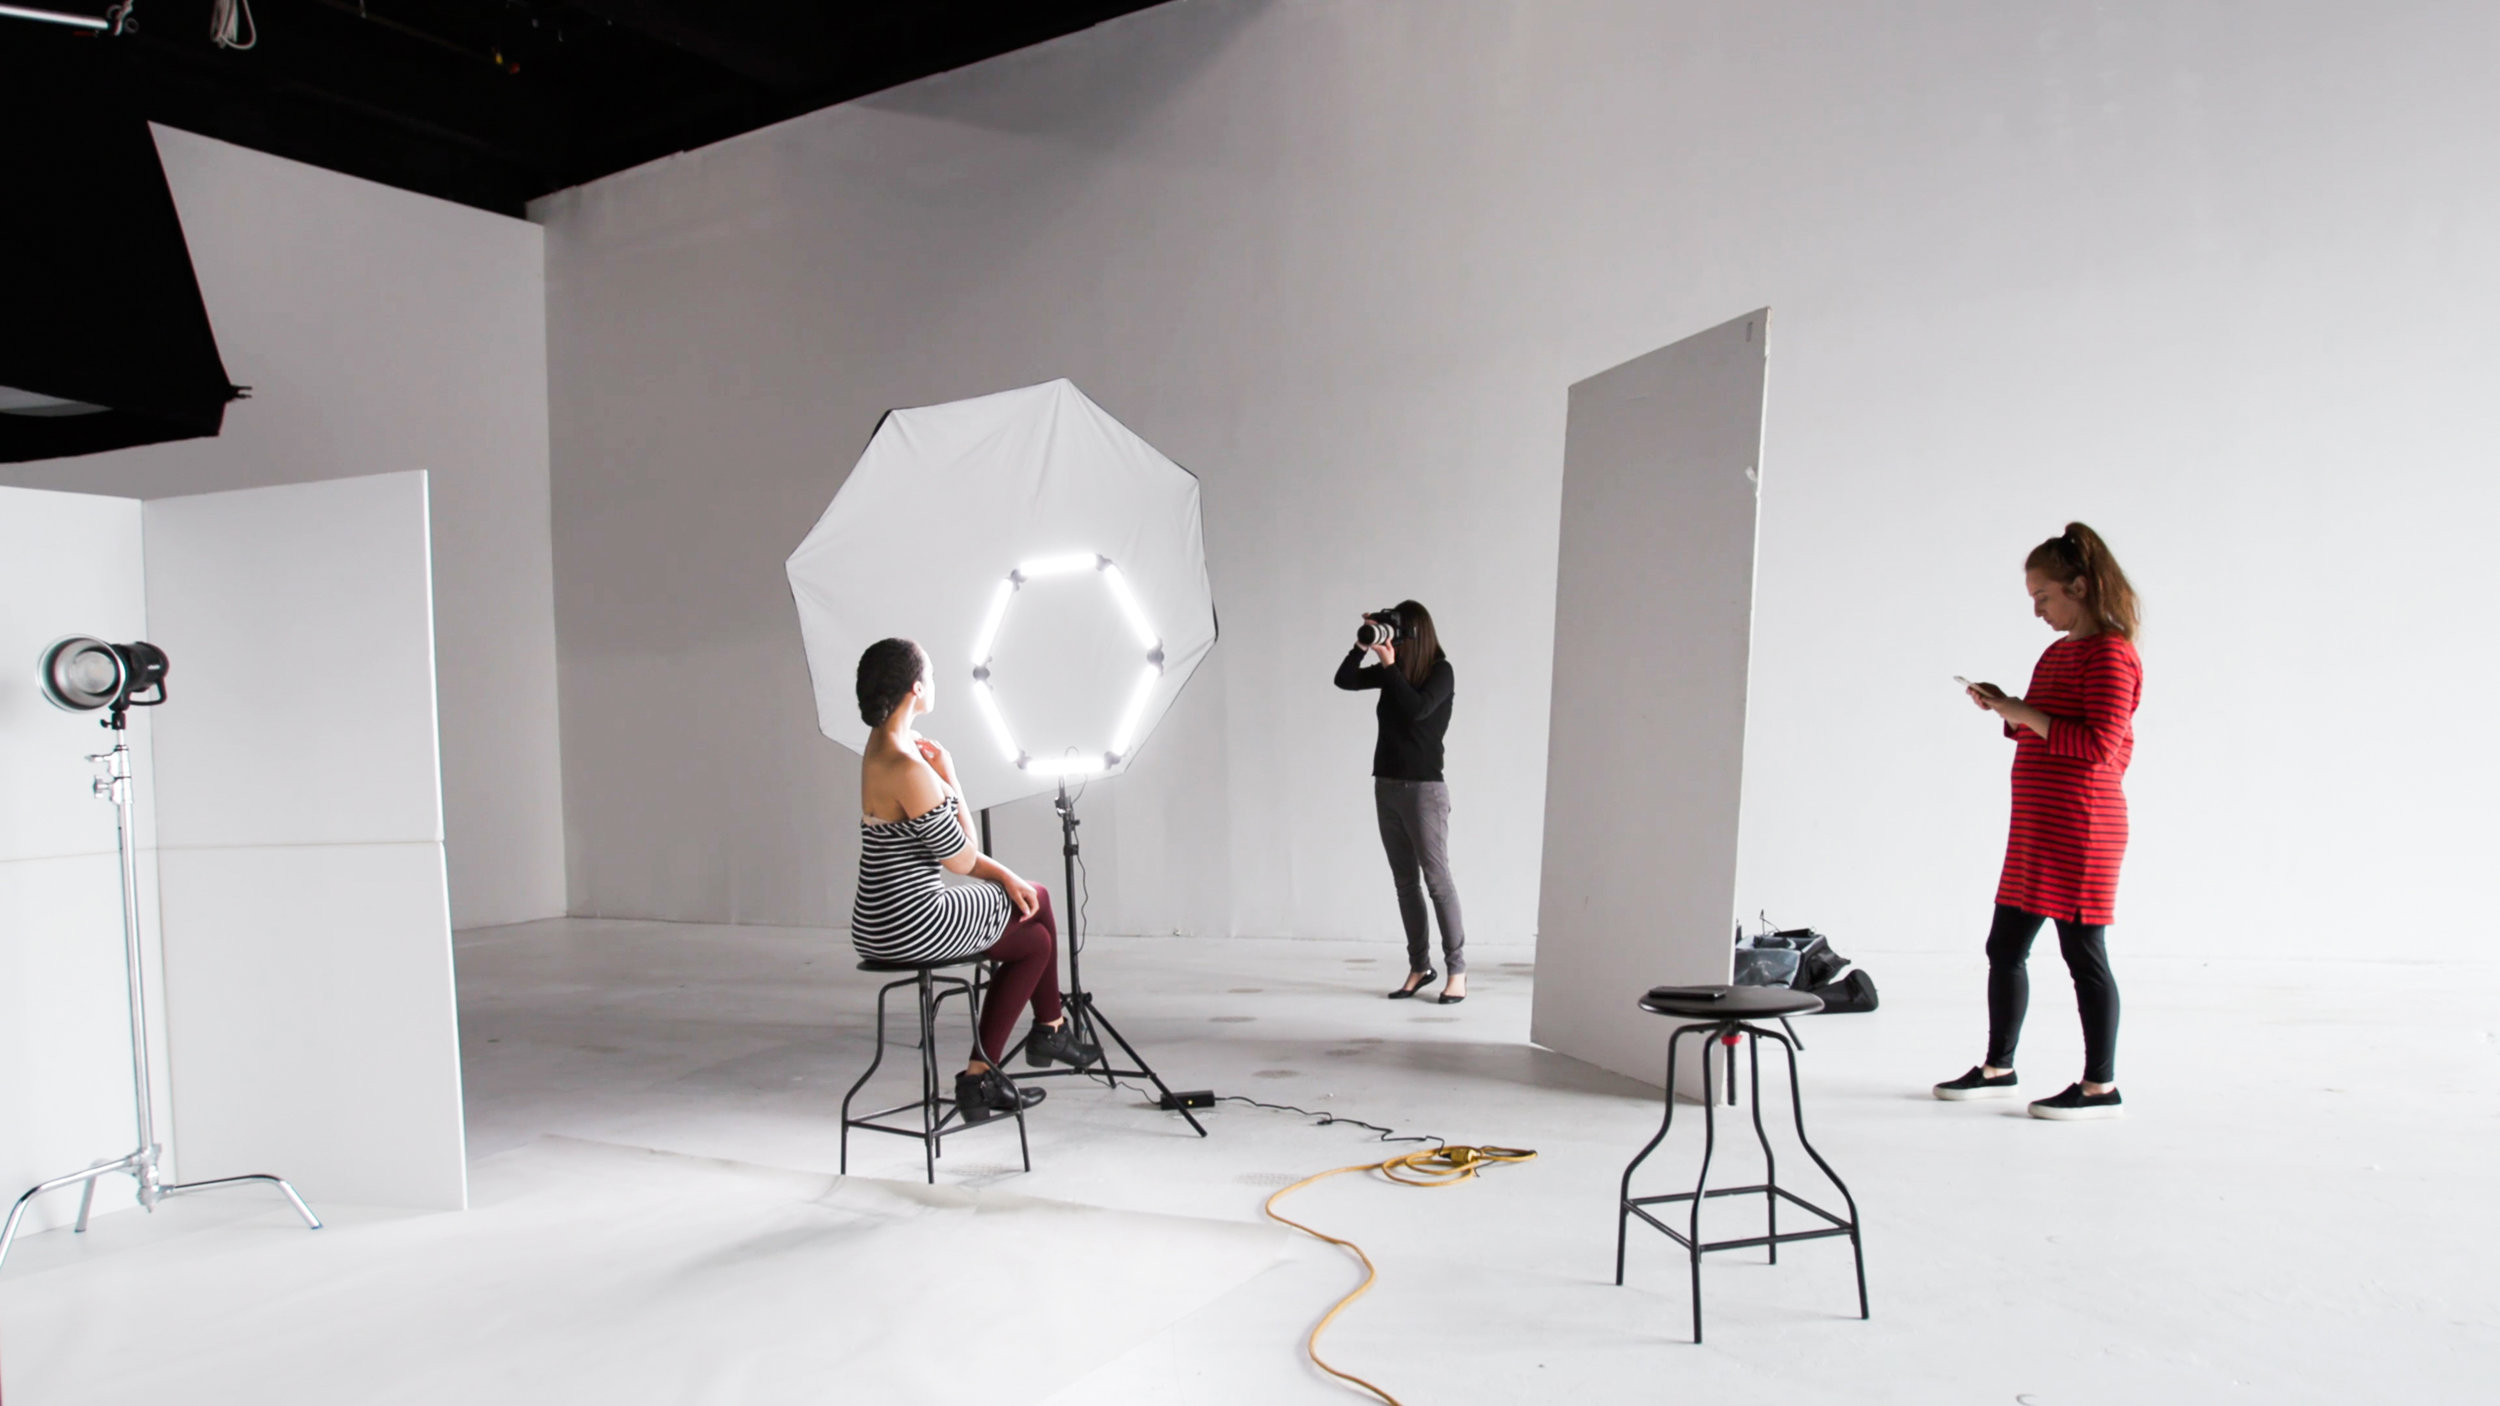 Behind-the-scenes: Boston Magazine photo shoot for Best of Boston 2019. Photographer: Diana Levine